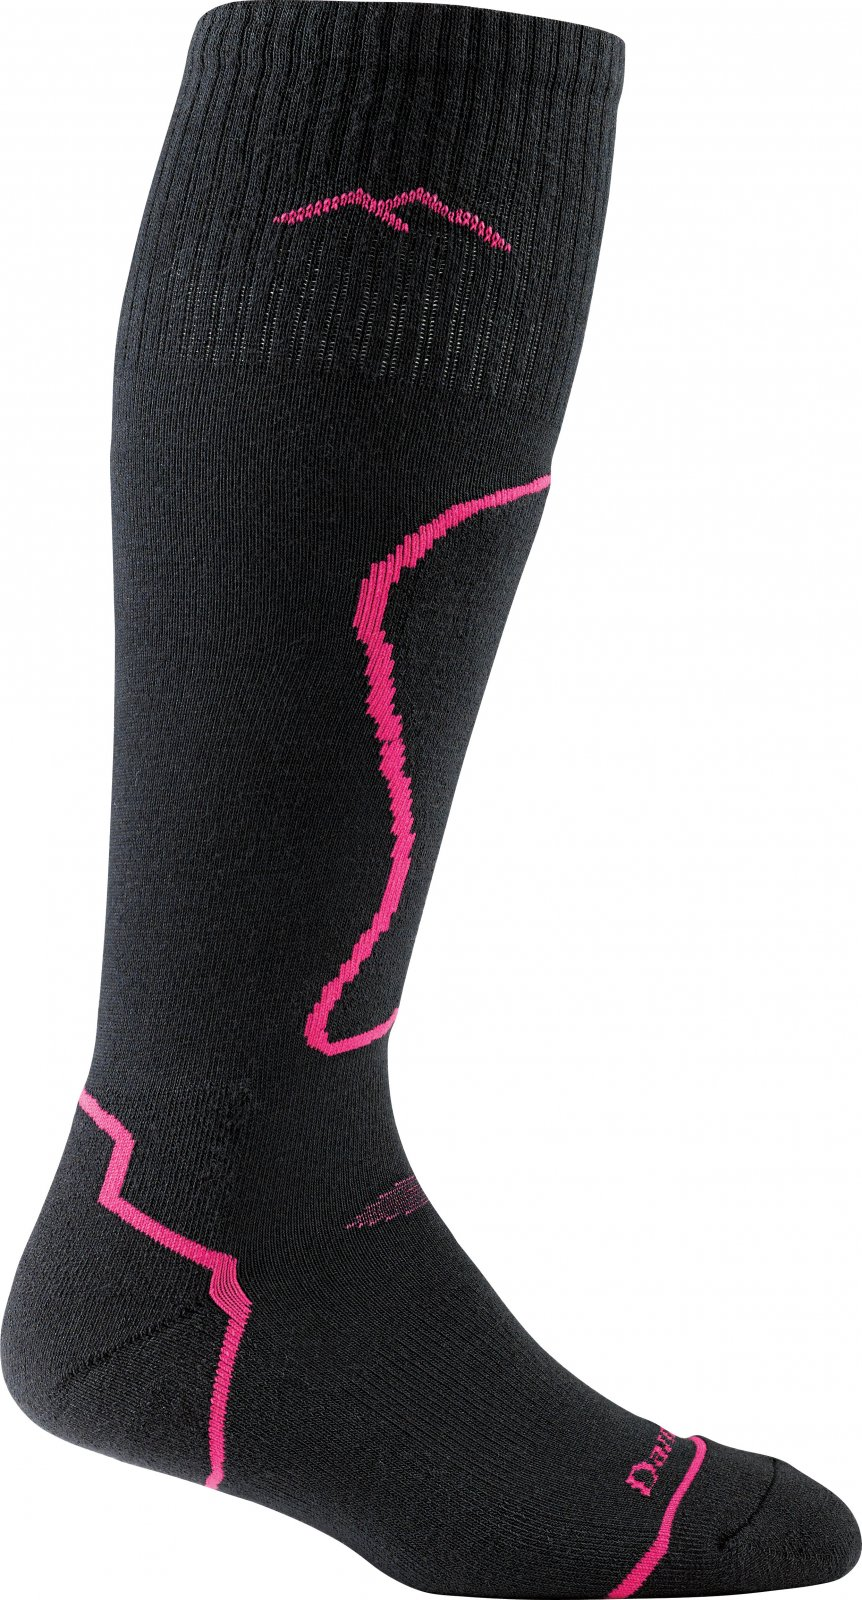 Darn Tough Women's Thermolite OTC Midweight Snowboard Sock